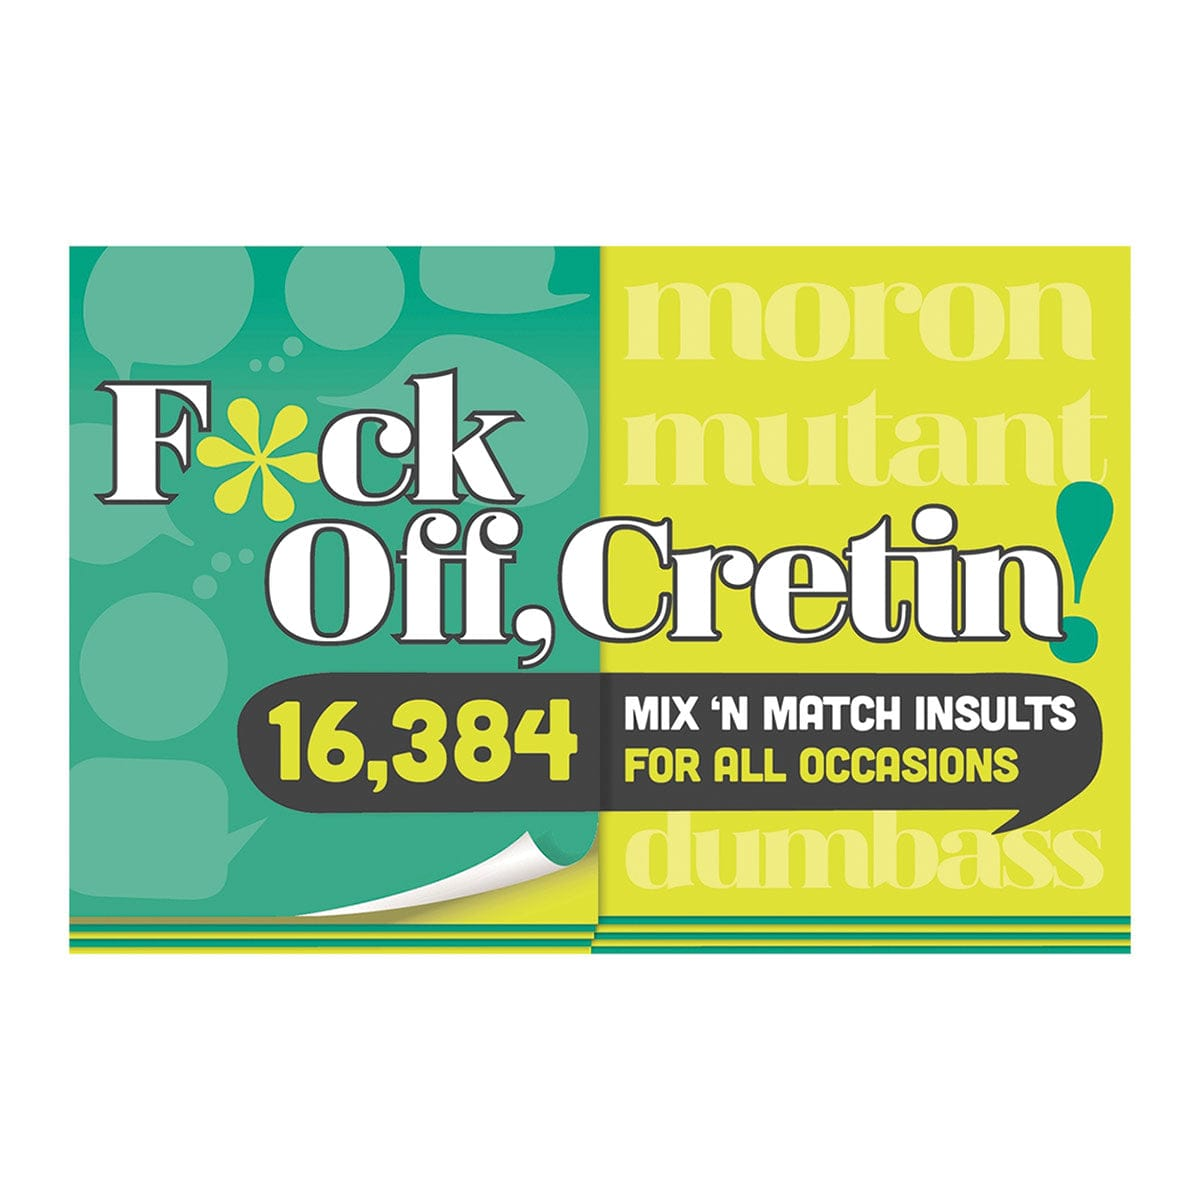 F*ck Off Cretin: 15,876 Mix-n-Match Insults by Knock Knock - rolik